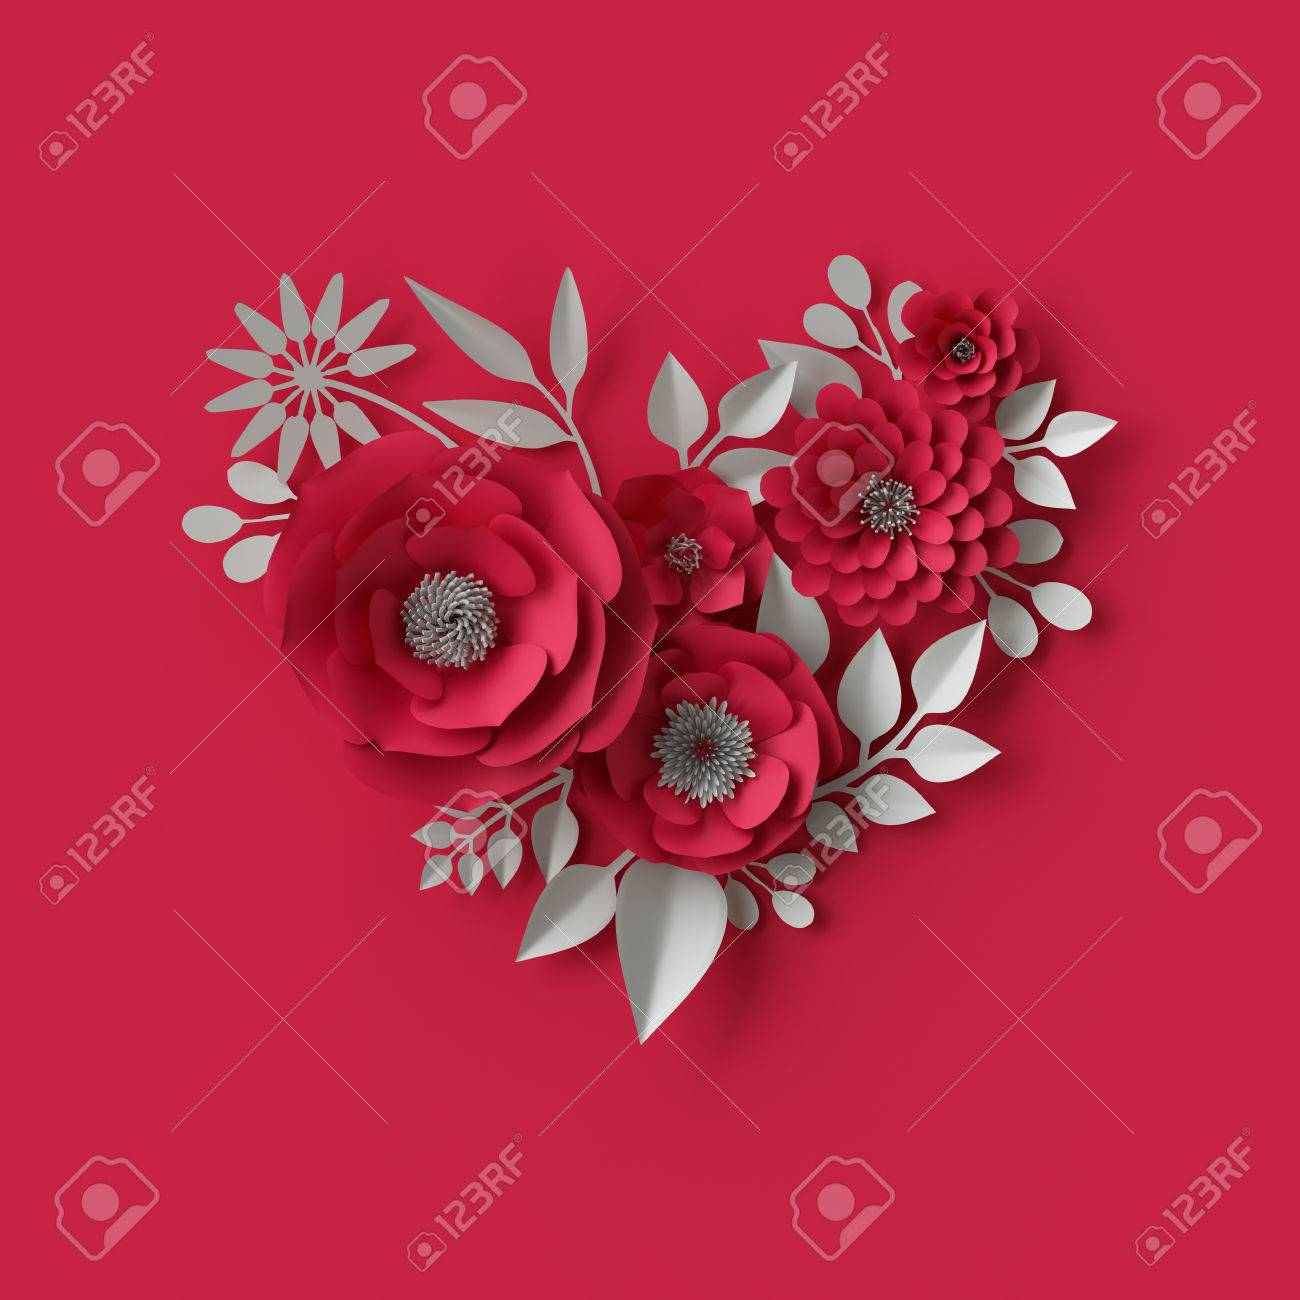 3d illustration decorative red paper flowers background stock photo 3d illustration decorative red paper flowers background stock illustration 71230005 mightylinksfo